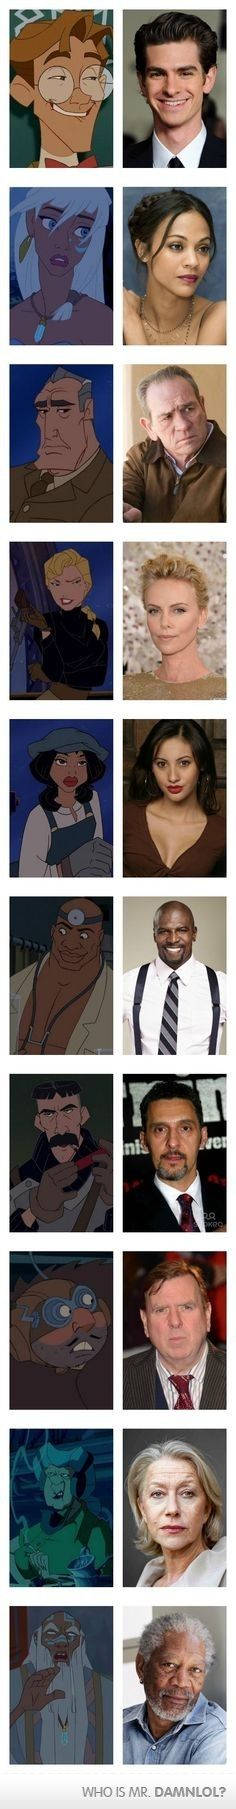 ...Or Eddie Murphy Could Just Play All The Roles - Damn! LOL